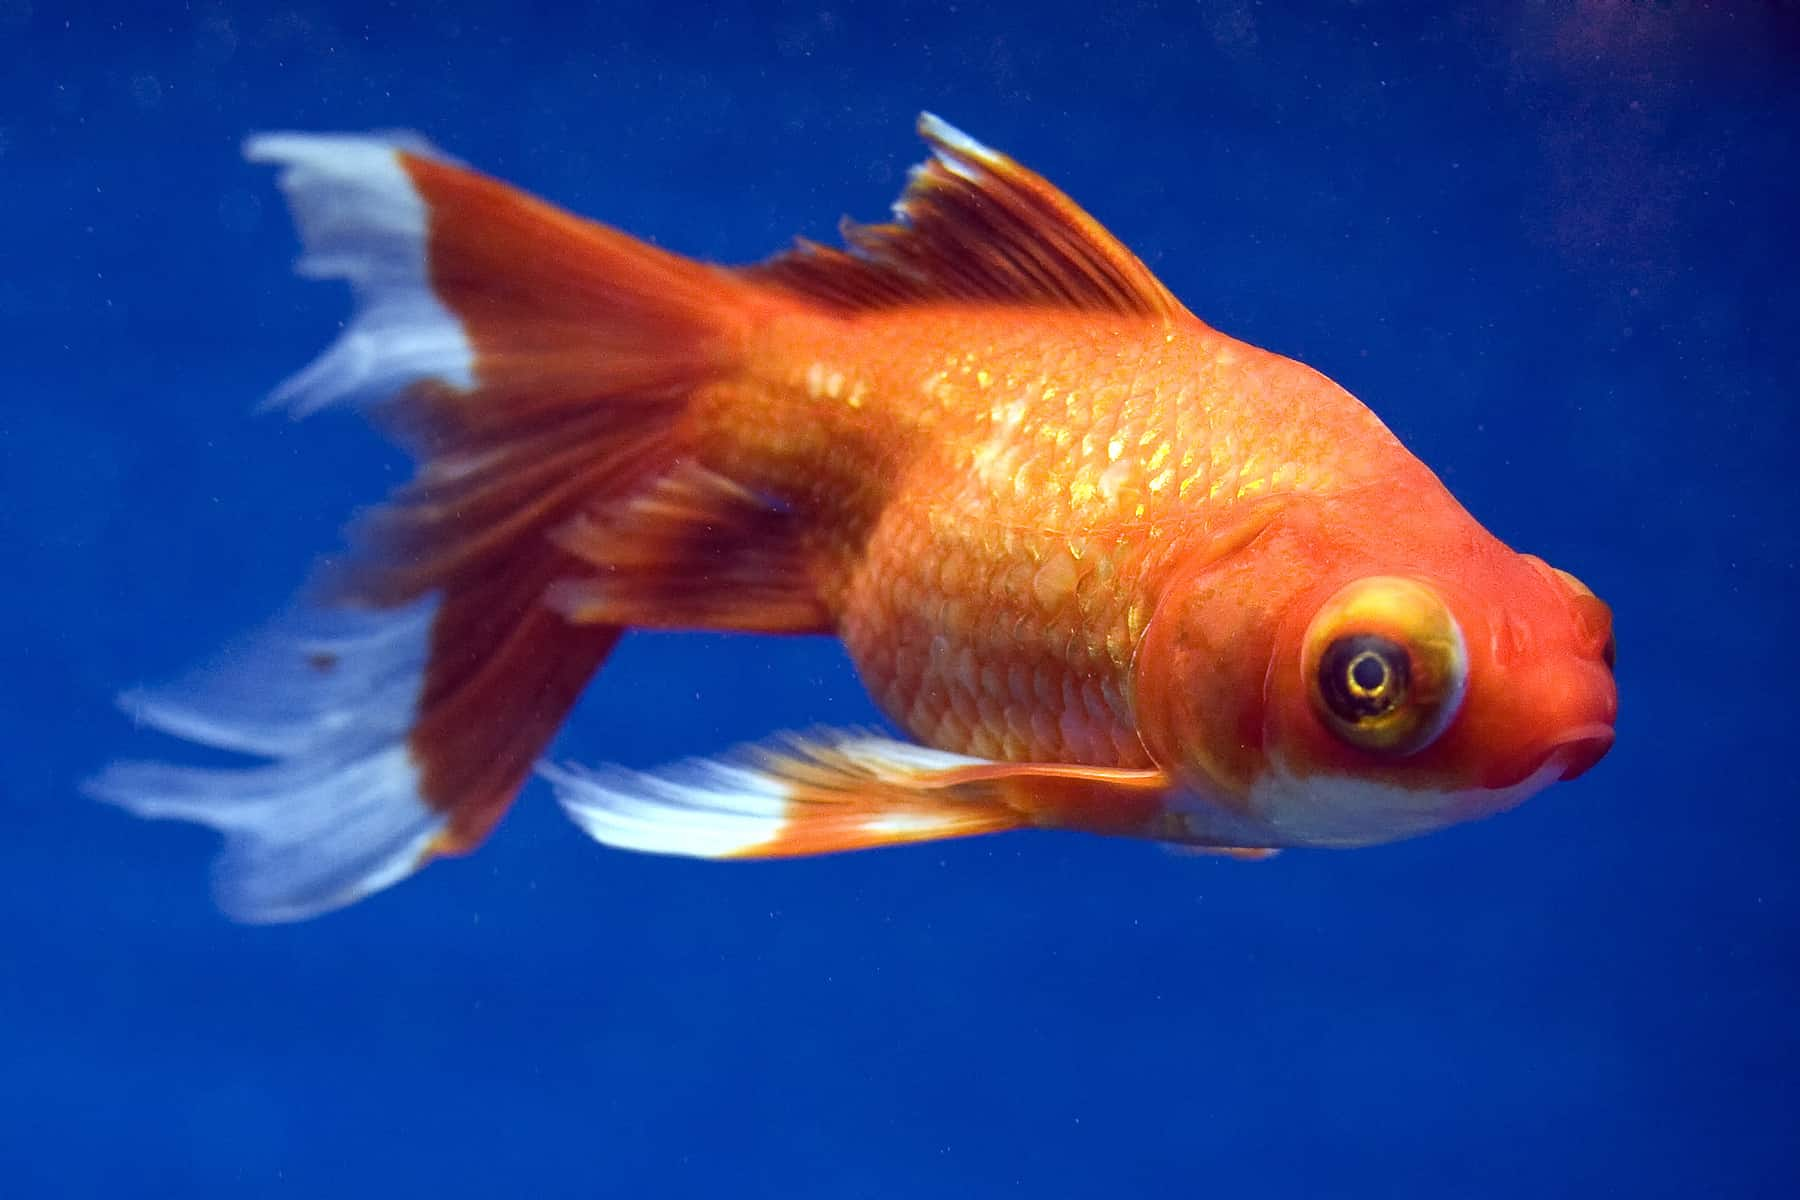 Best Way To Care For A Telescope Goldfish